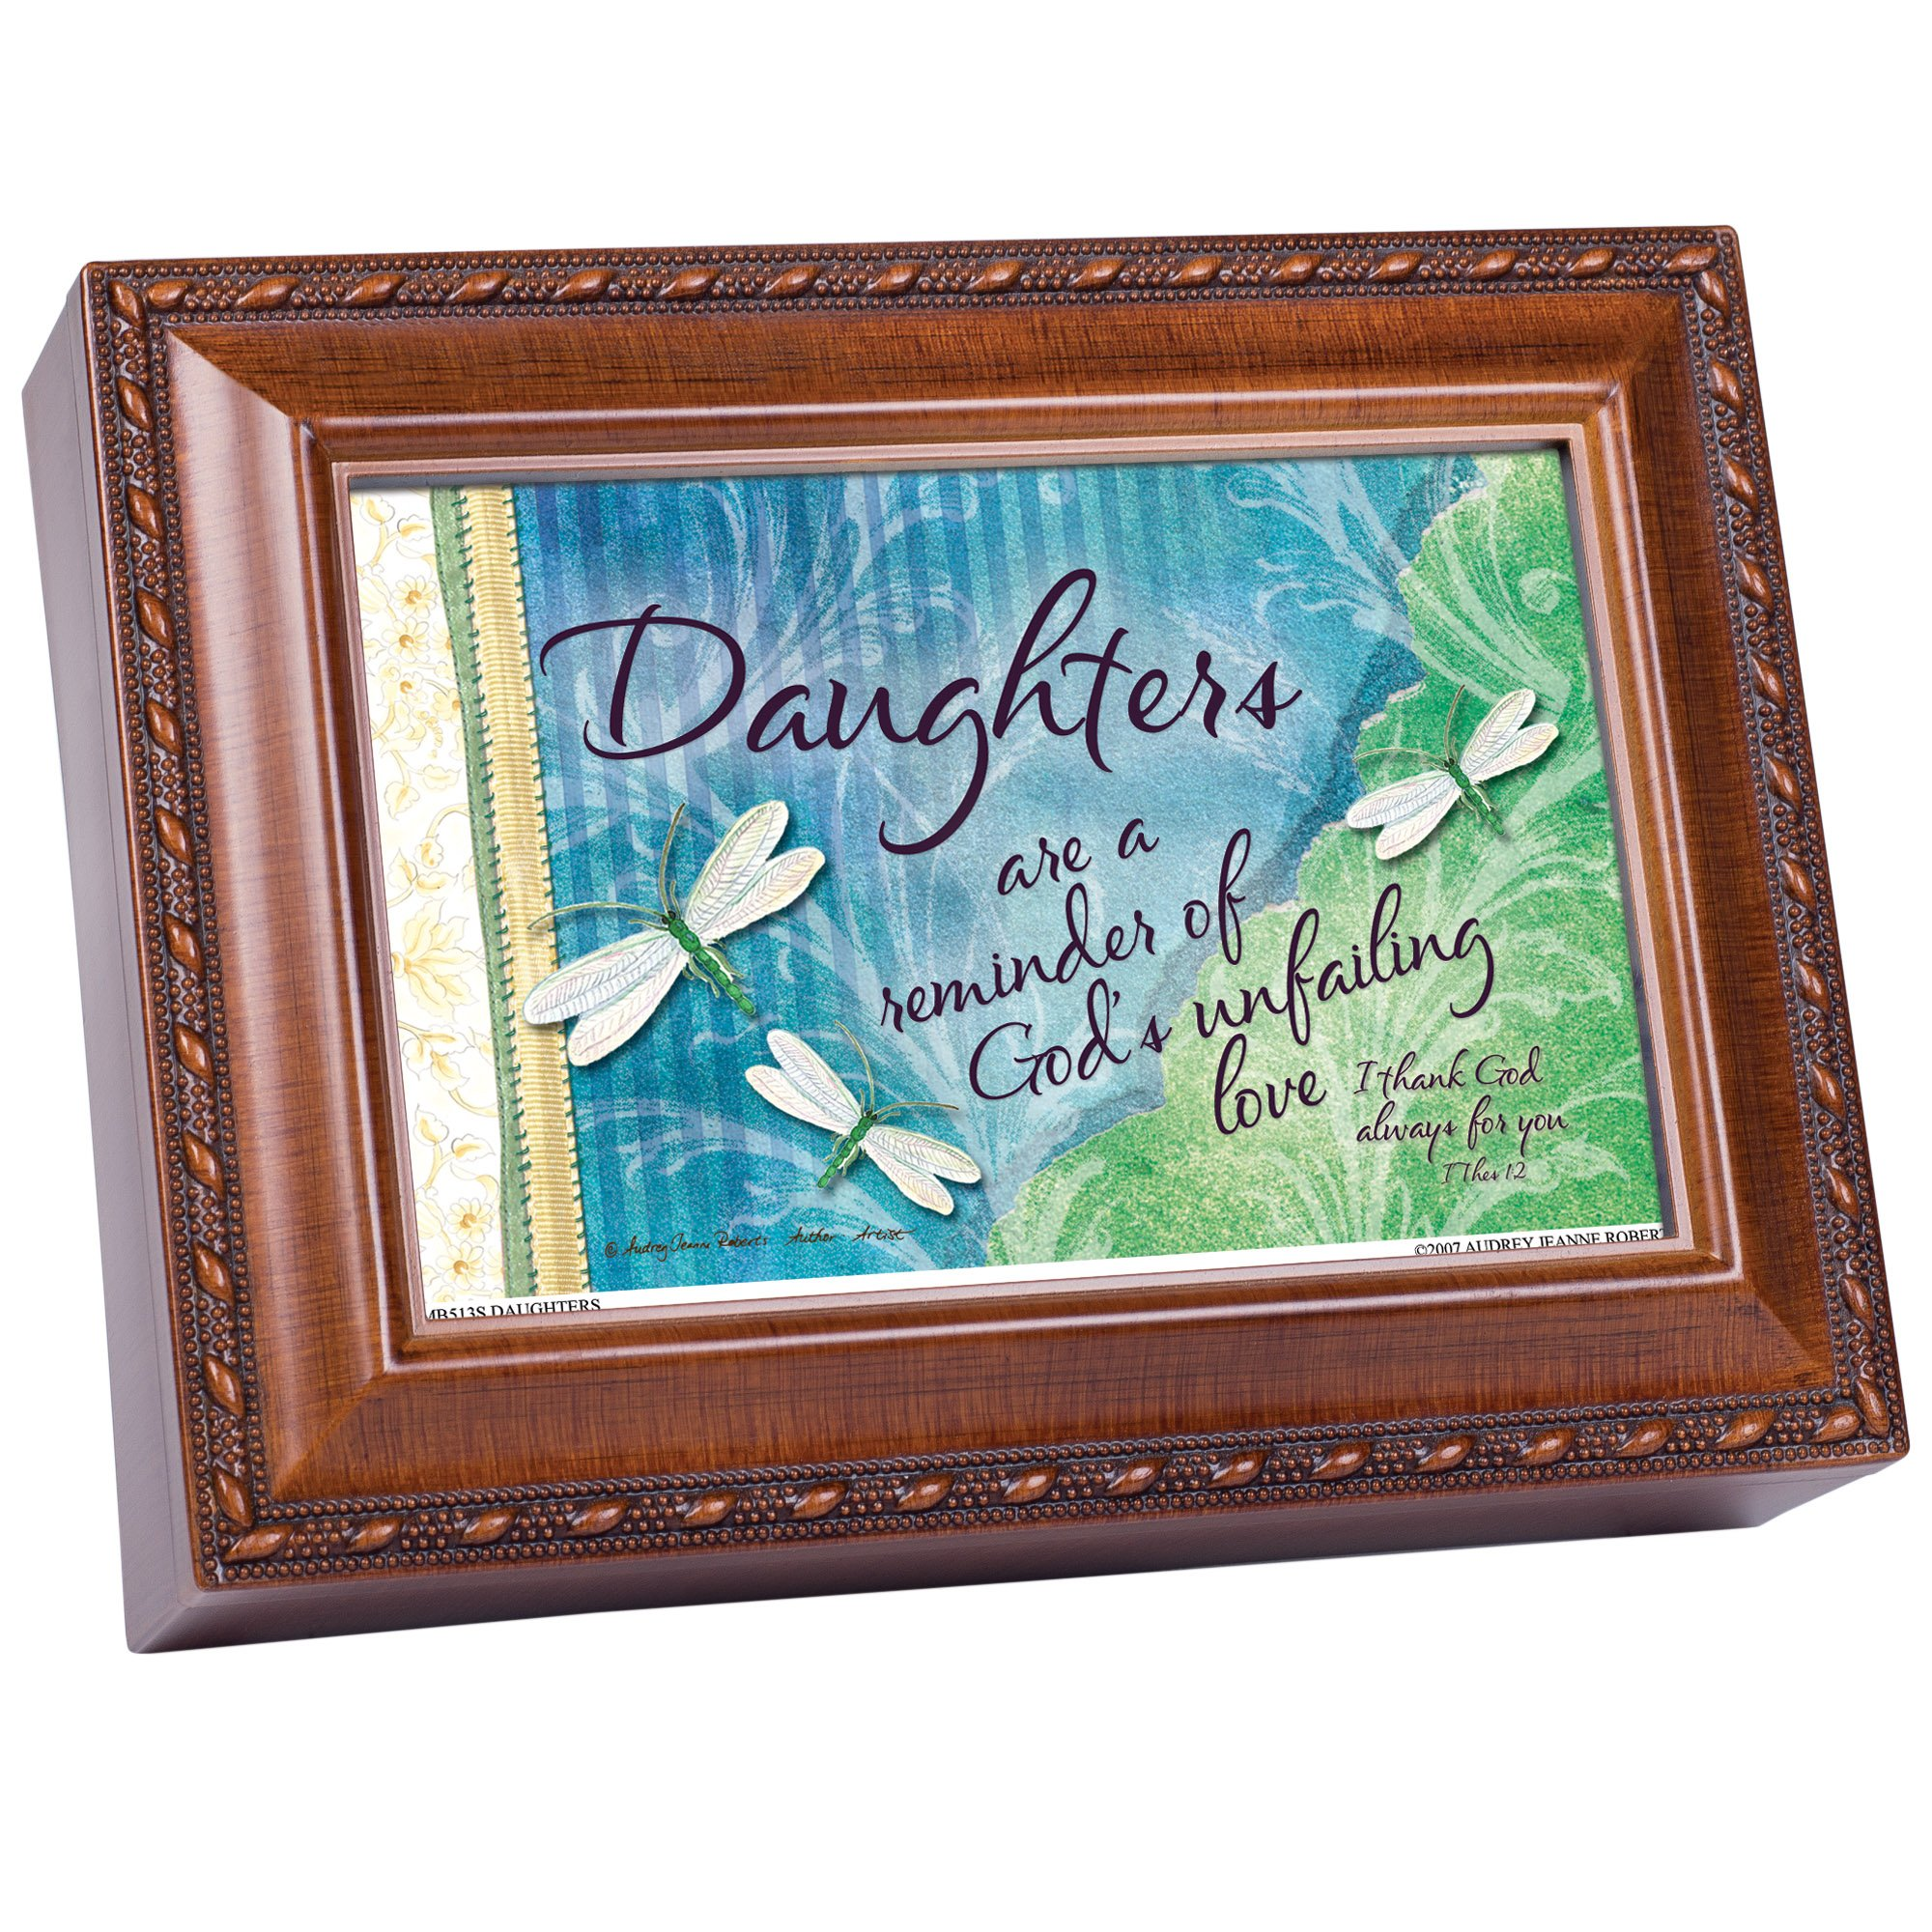 Cottage Garden Daughters Precious And Few Woodgrain Traditional Music Box Plays Friend in Jesus